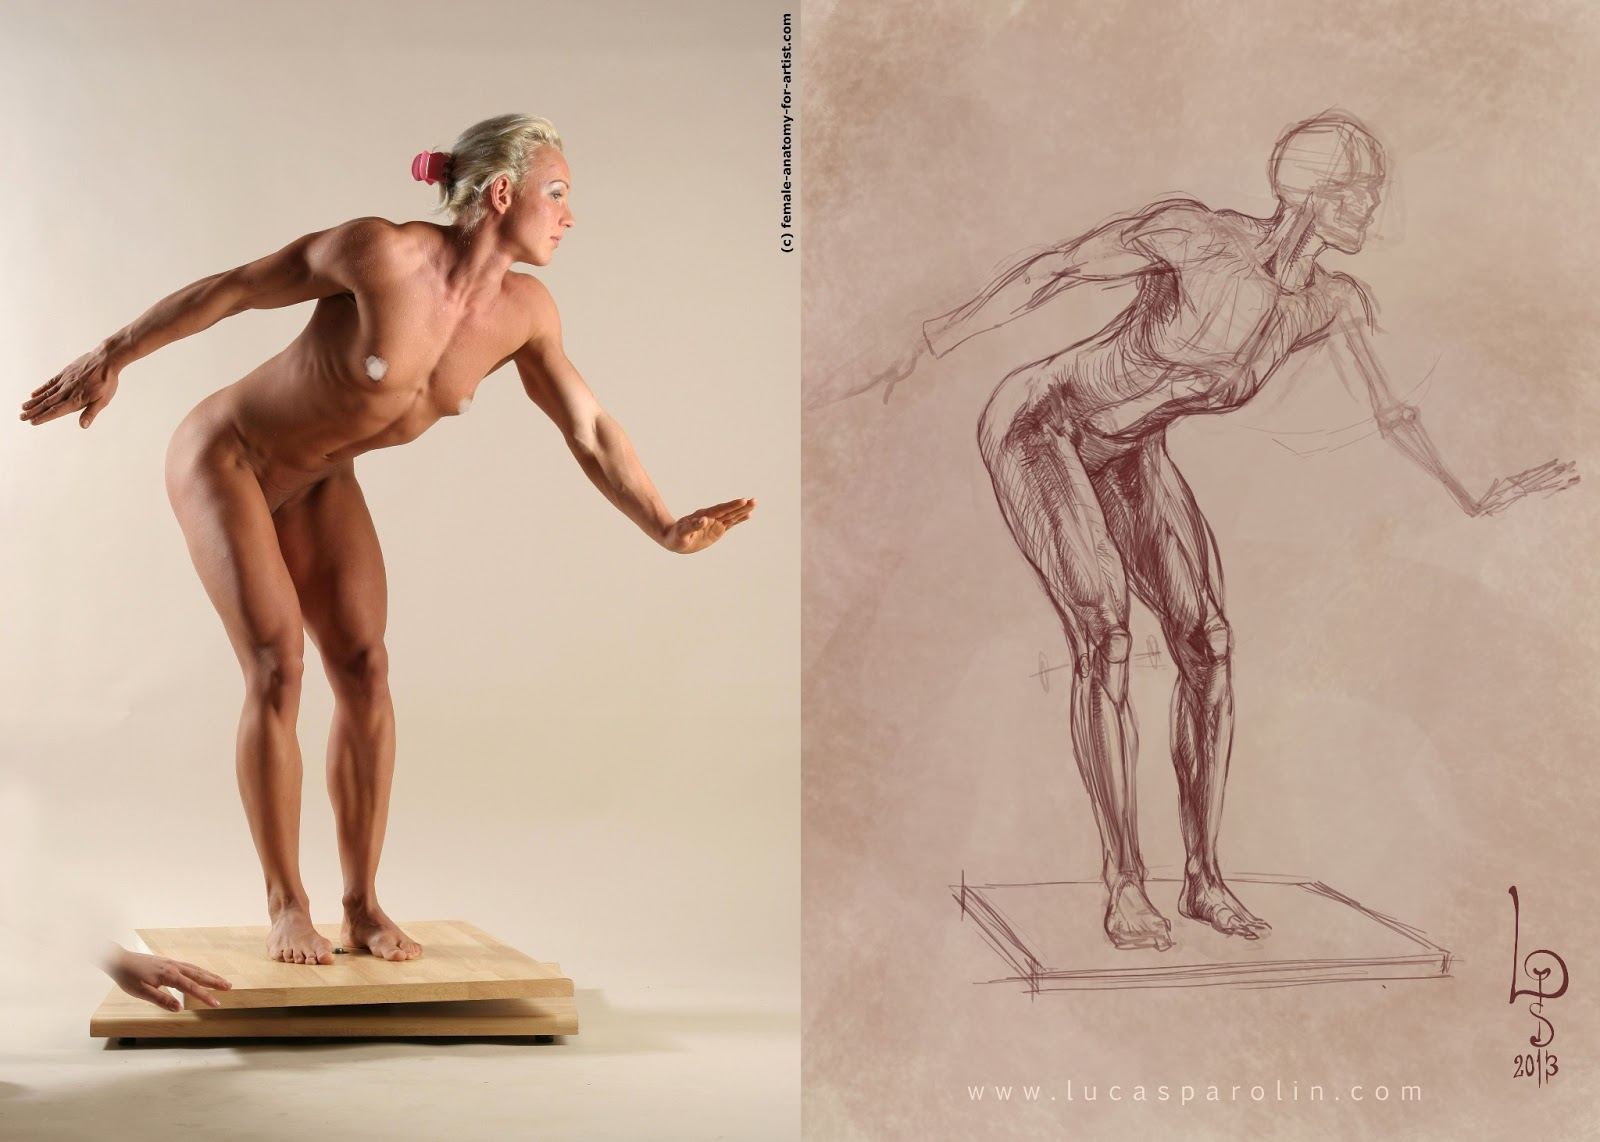 Lucas Parolin - concept art and studies: Anatomy from photos